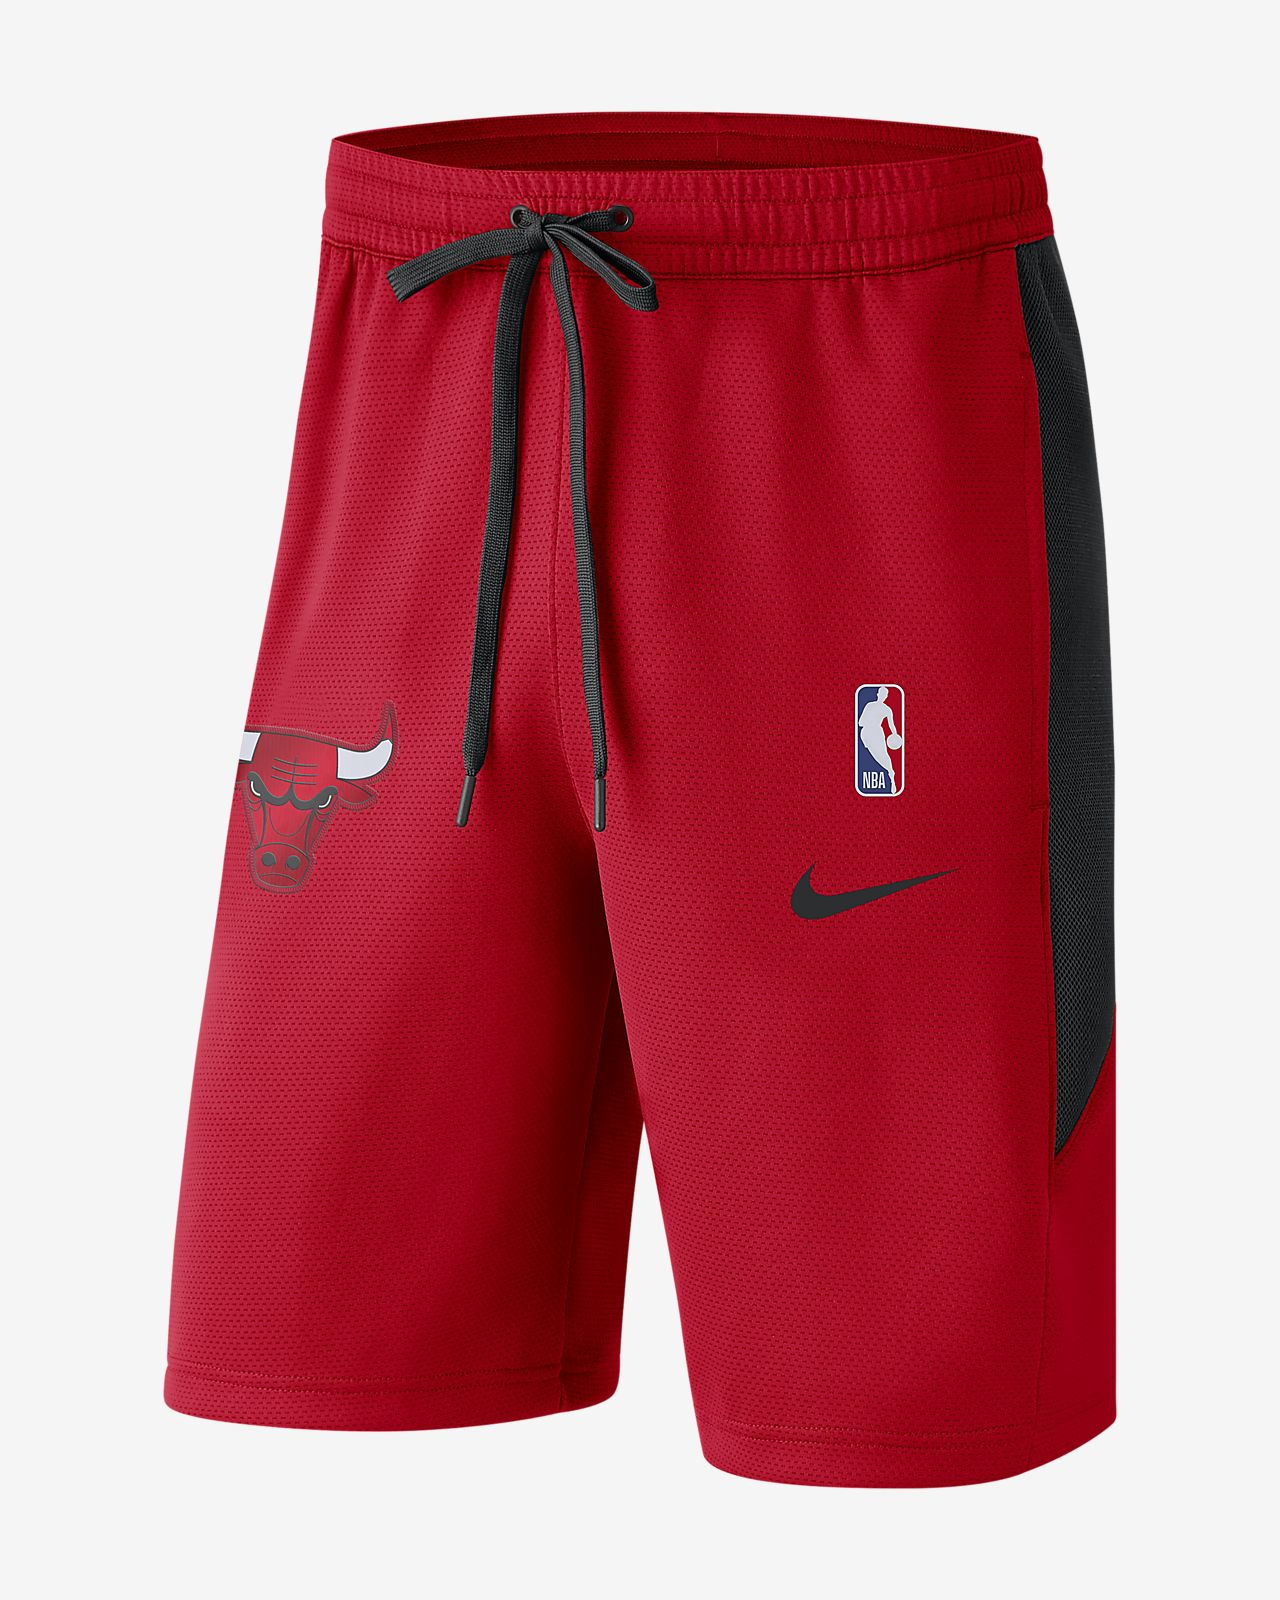 e0370fc5a6cd Chicago Bulls Nike Therma Flex Men s NBA Shorts. Nike.com